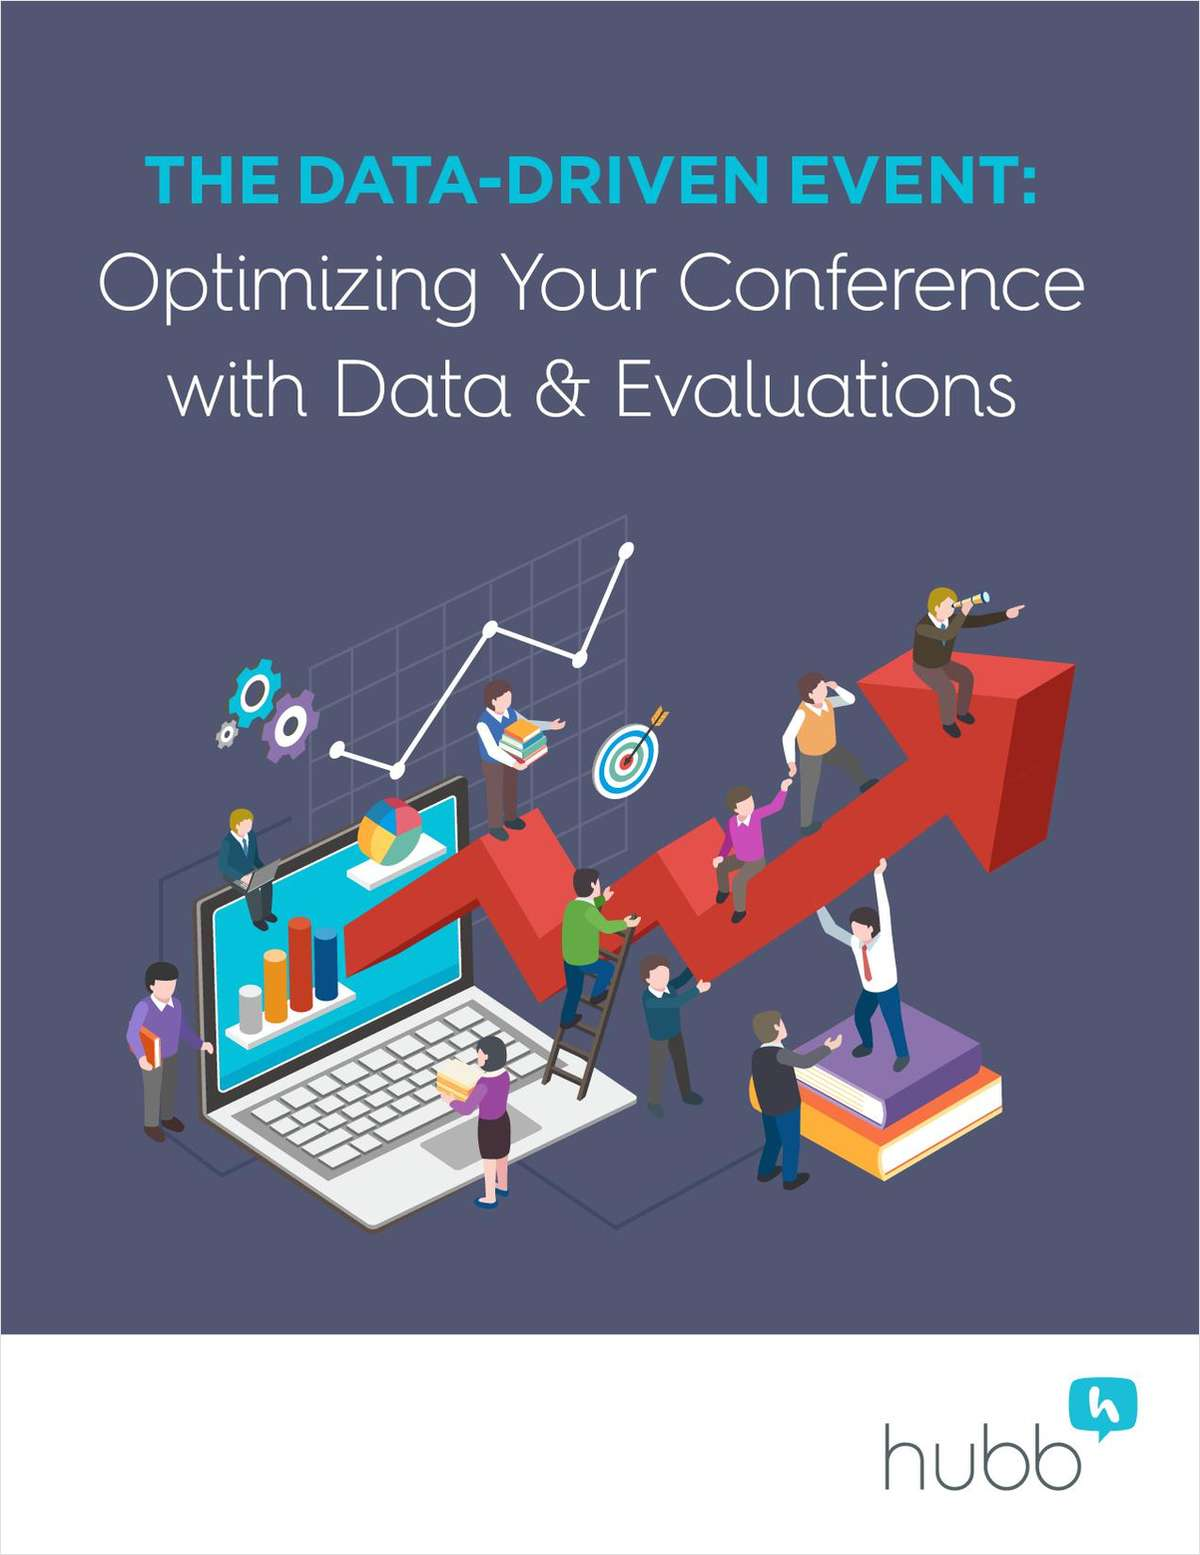 The Data-Driven Event: Optimizing your Conference with Data and Evaluations